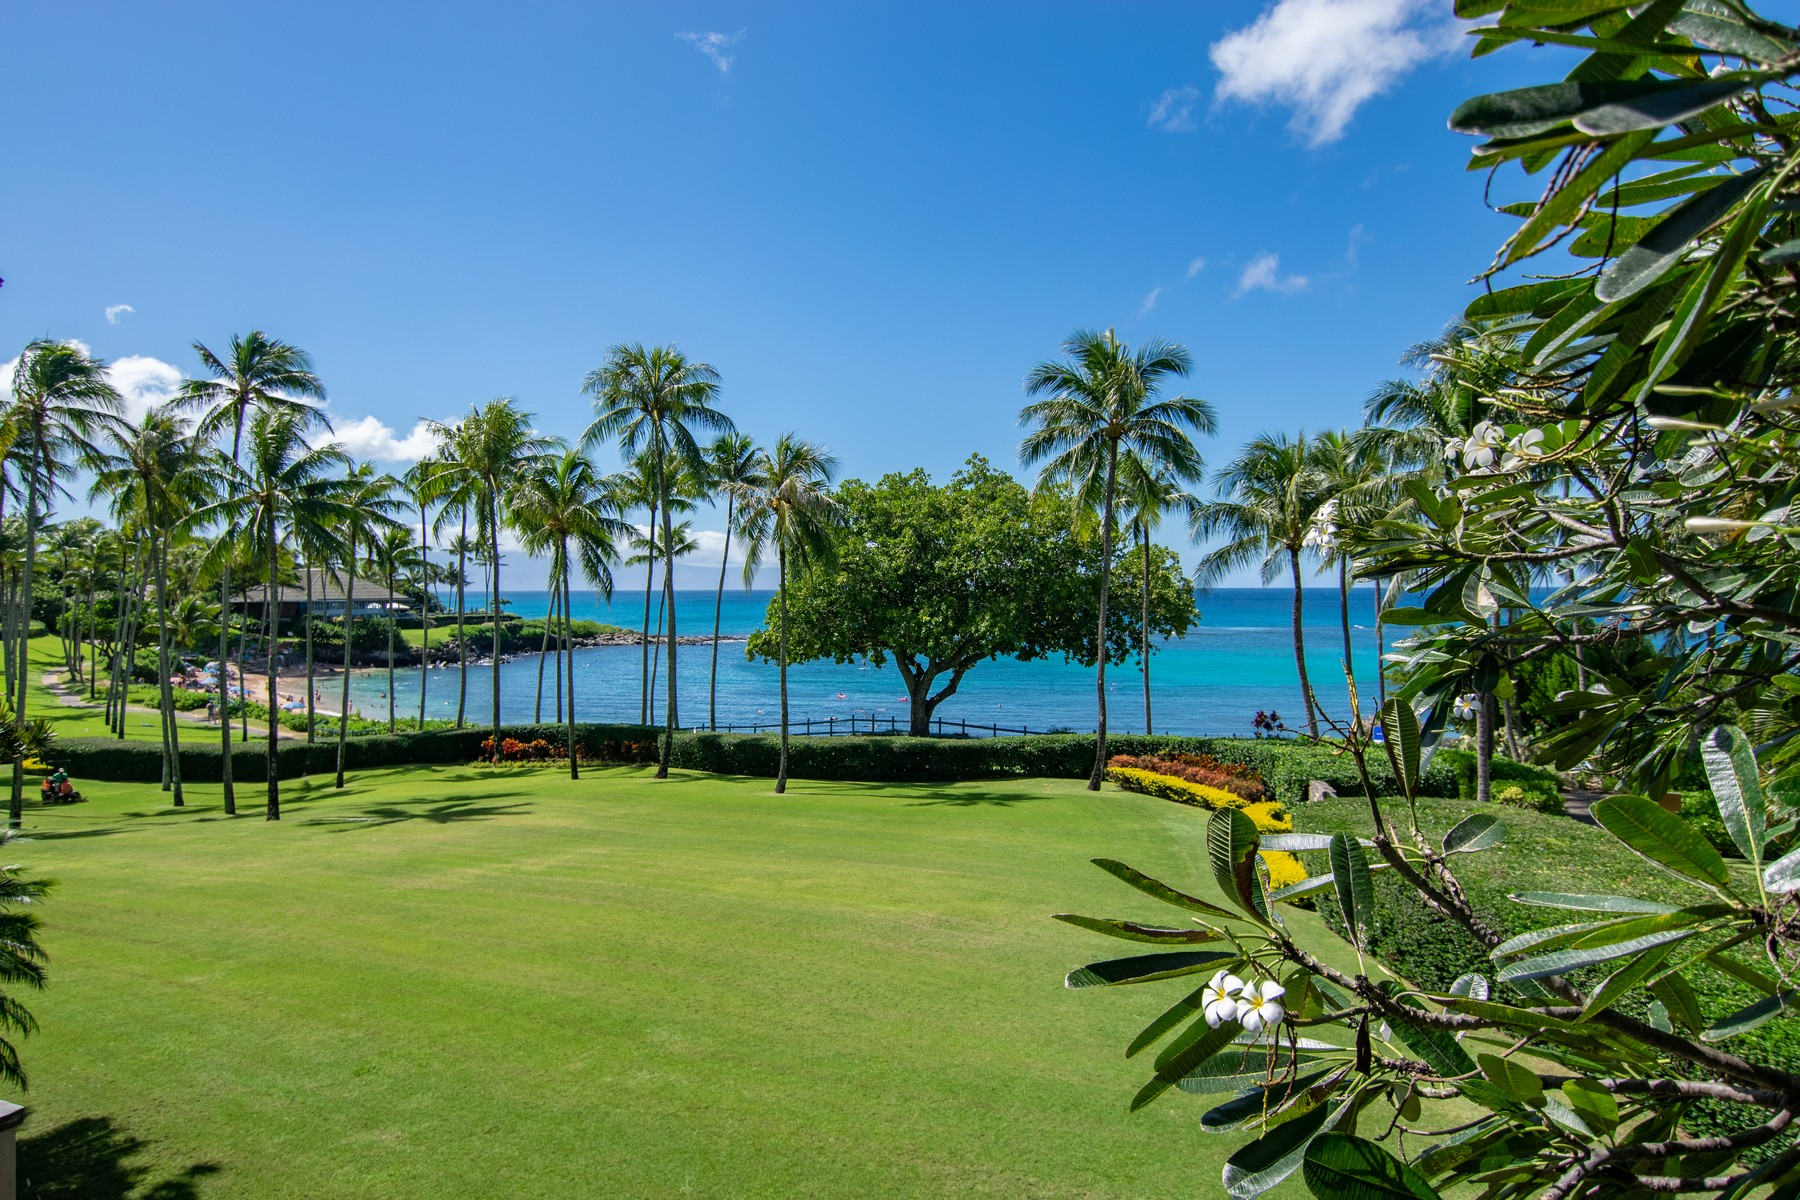 Condominiums για την Πώληση στο Coconut Grove on Kapalua Bay 36 Coconut Grove Lane, Coconut Grove 36, Kapalua, Χαβαη 96761 Ηνωμένες Πολιτείες